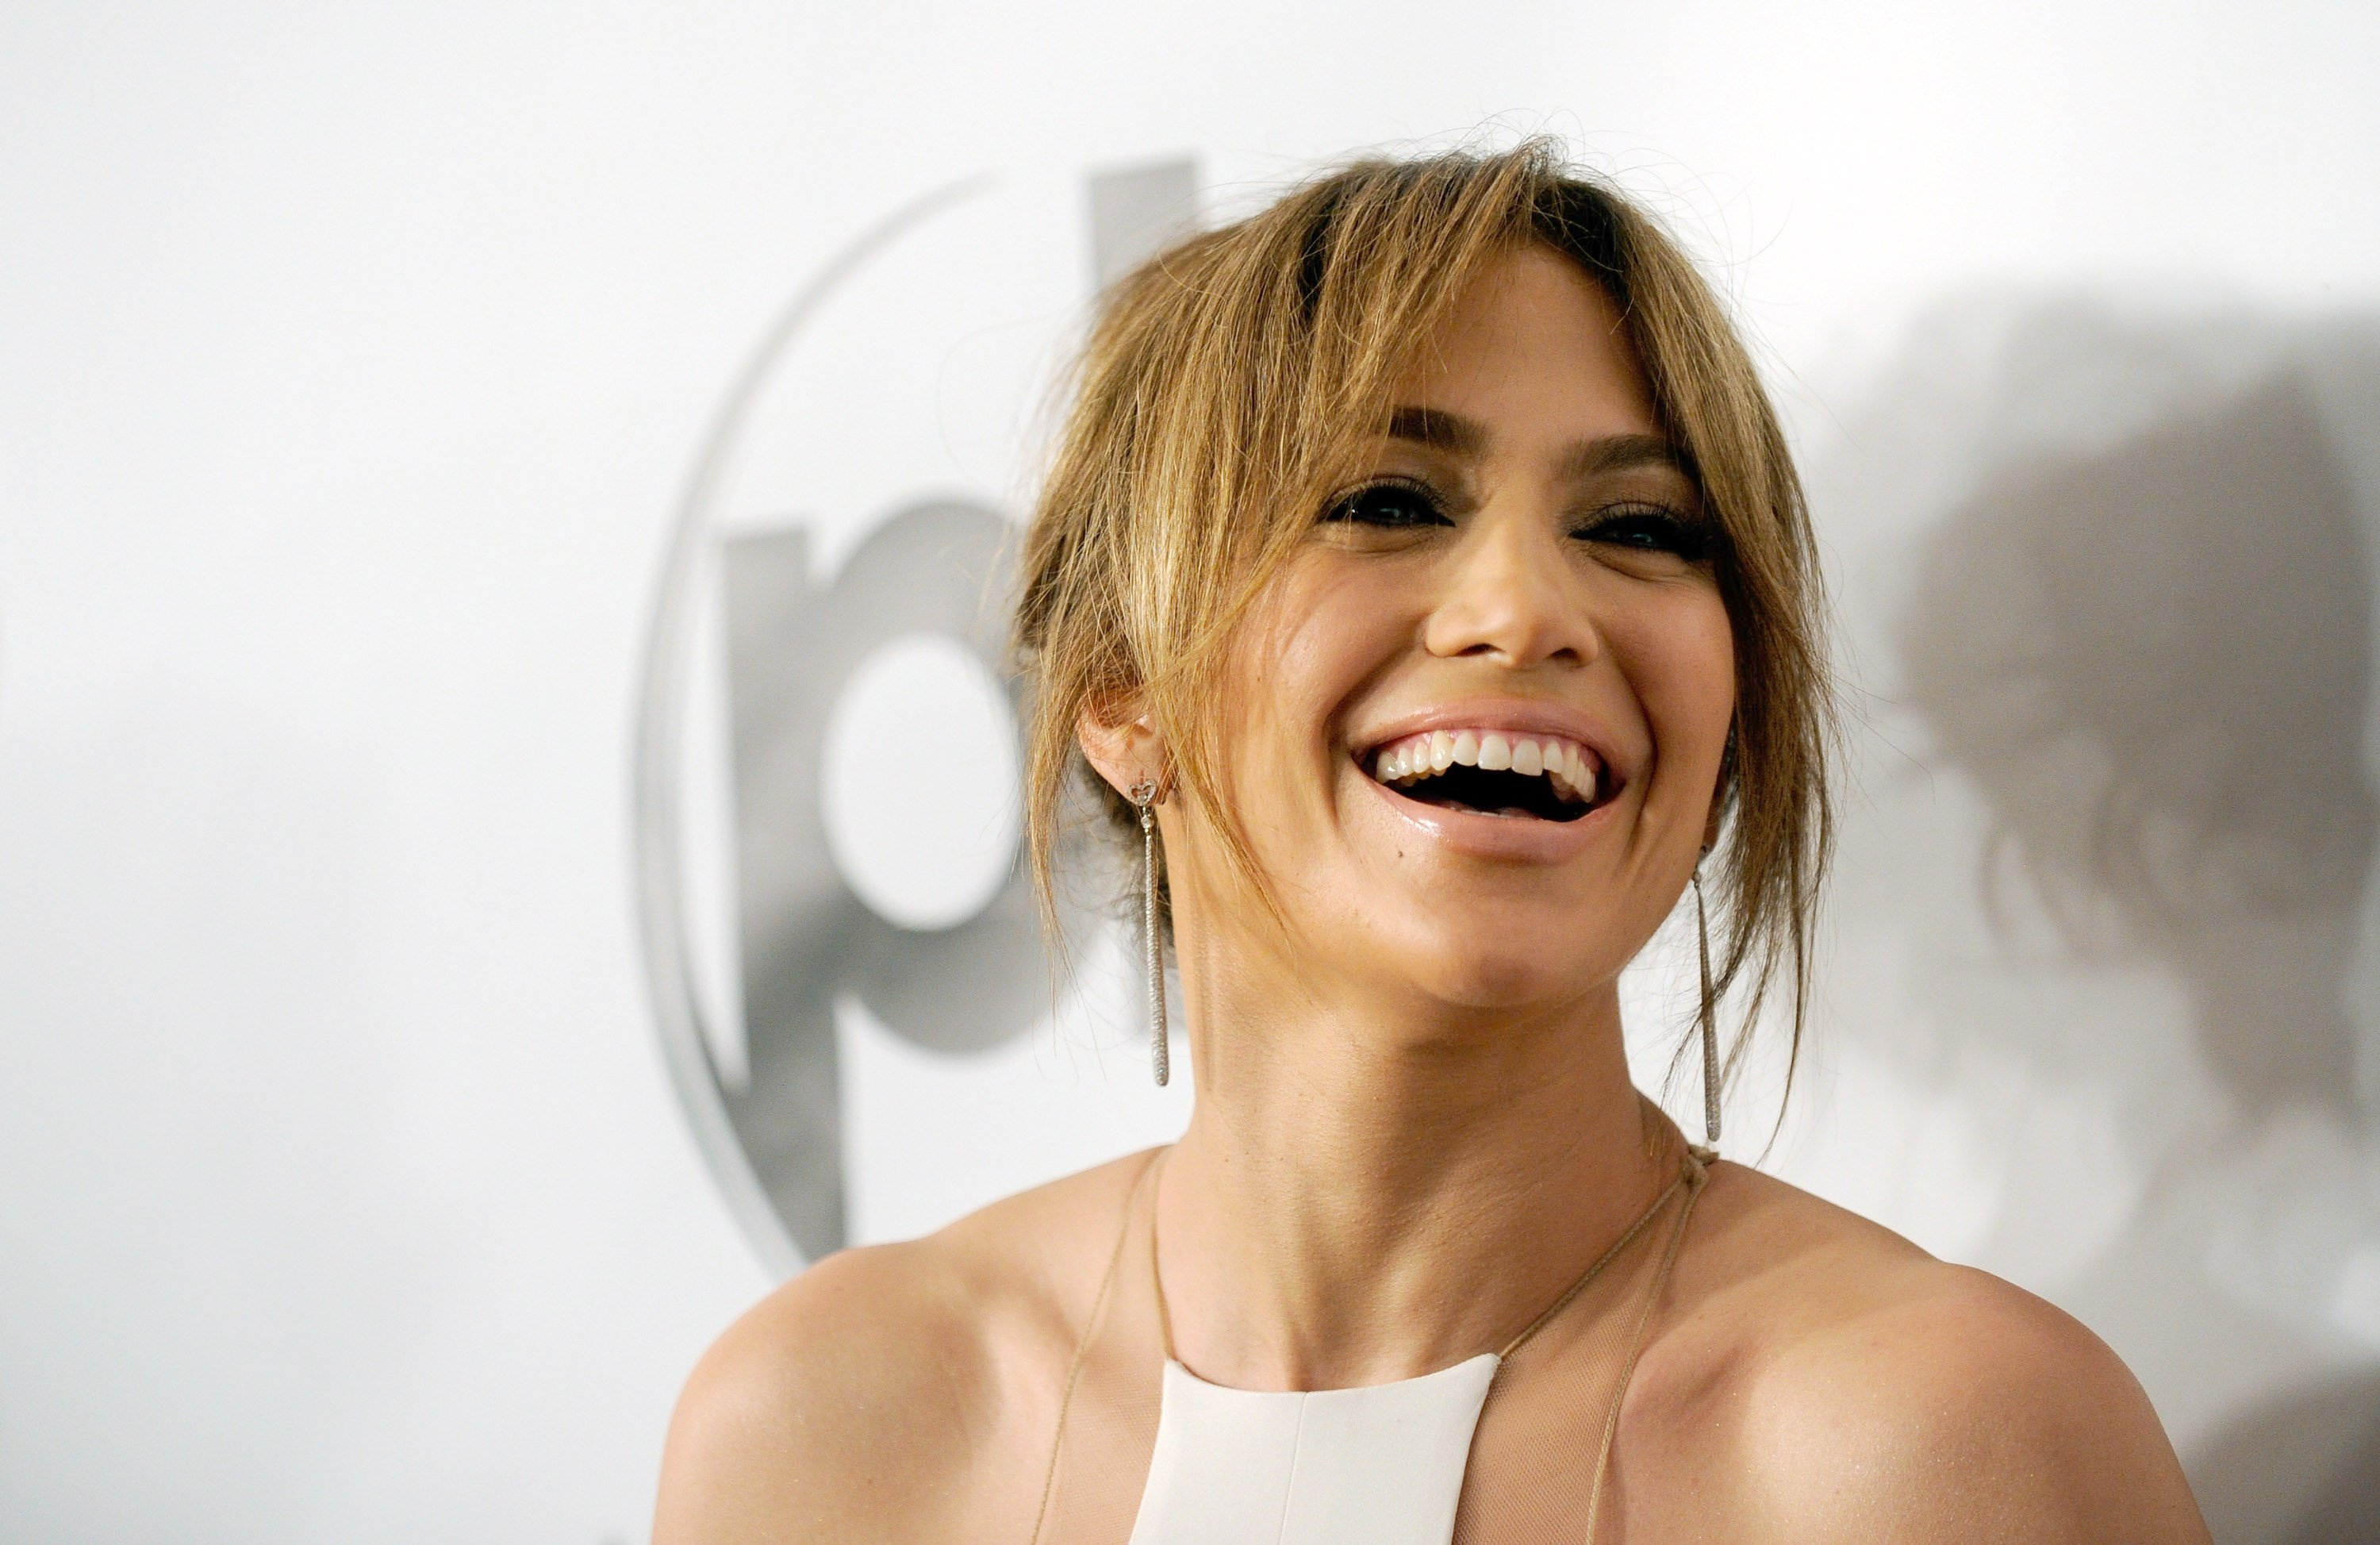 """Jennifer Lopez arrives at the premiere of FilmDistrict's """"Parker"""" at Planet Hollywood Resort & Casino on January 24, 2013 in Las Vegas, Nevada 